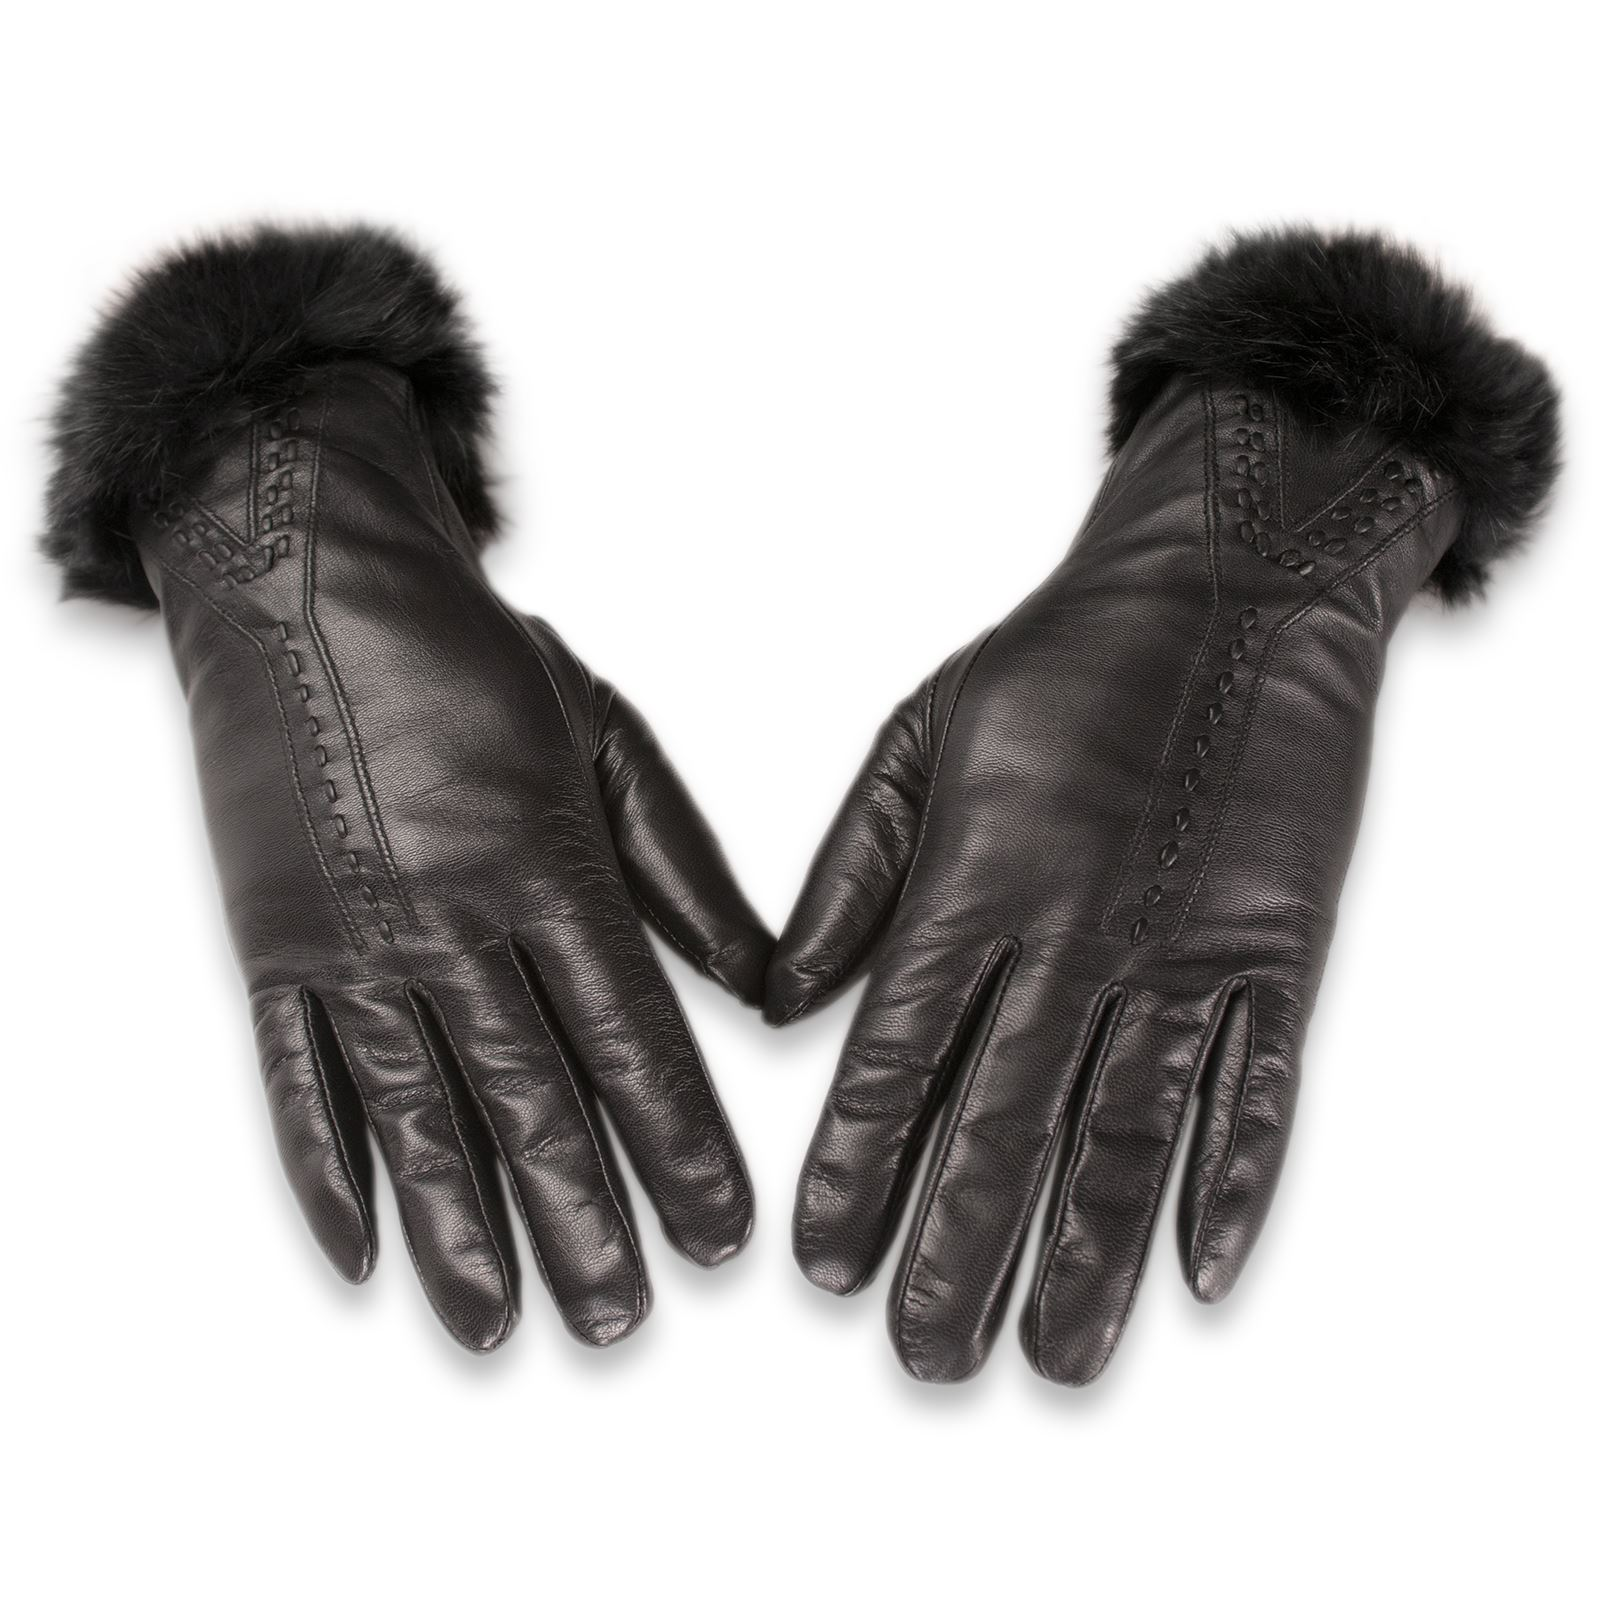 Ladies leather gloves wool lined - Quivano Black Label Premium Ladies Leather Gloves Wool